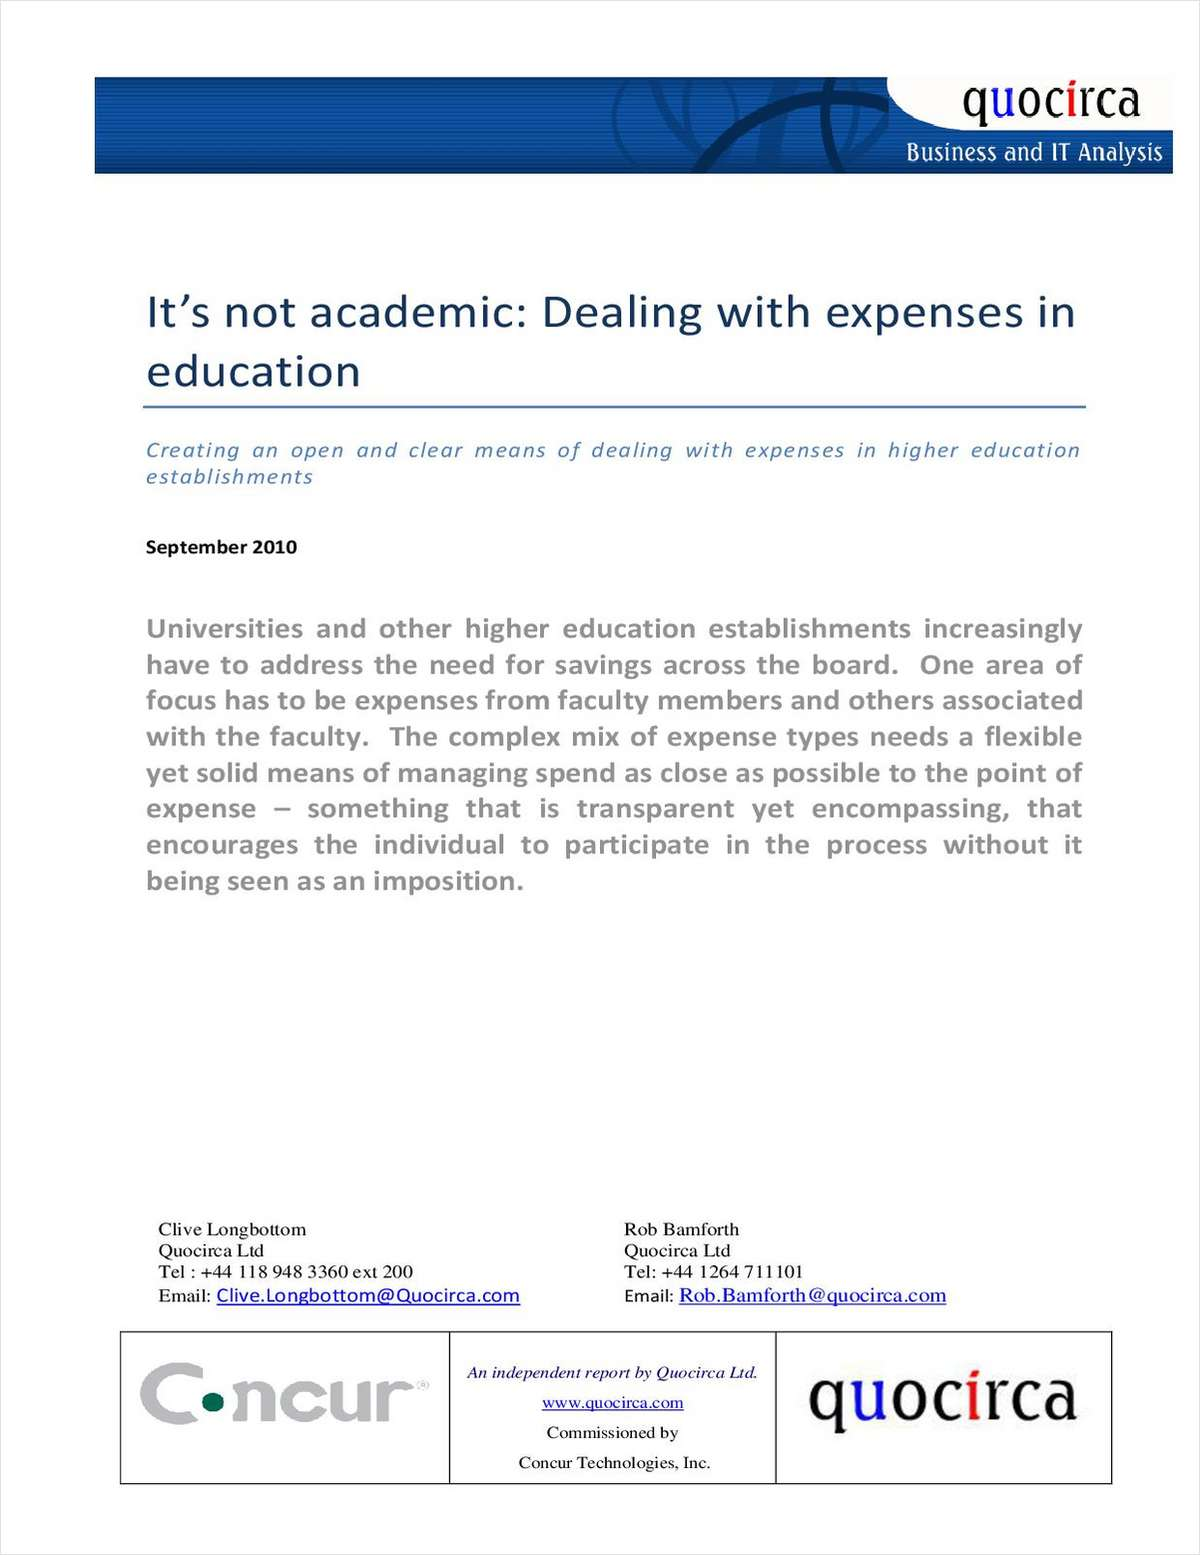 It's Not Academic - Dealing with Expense Management in Higher Education